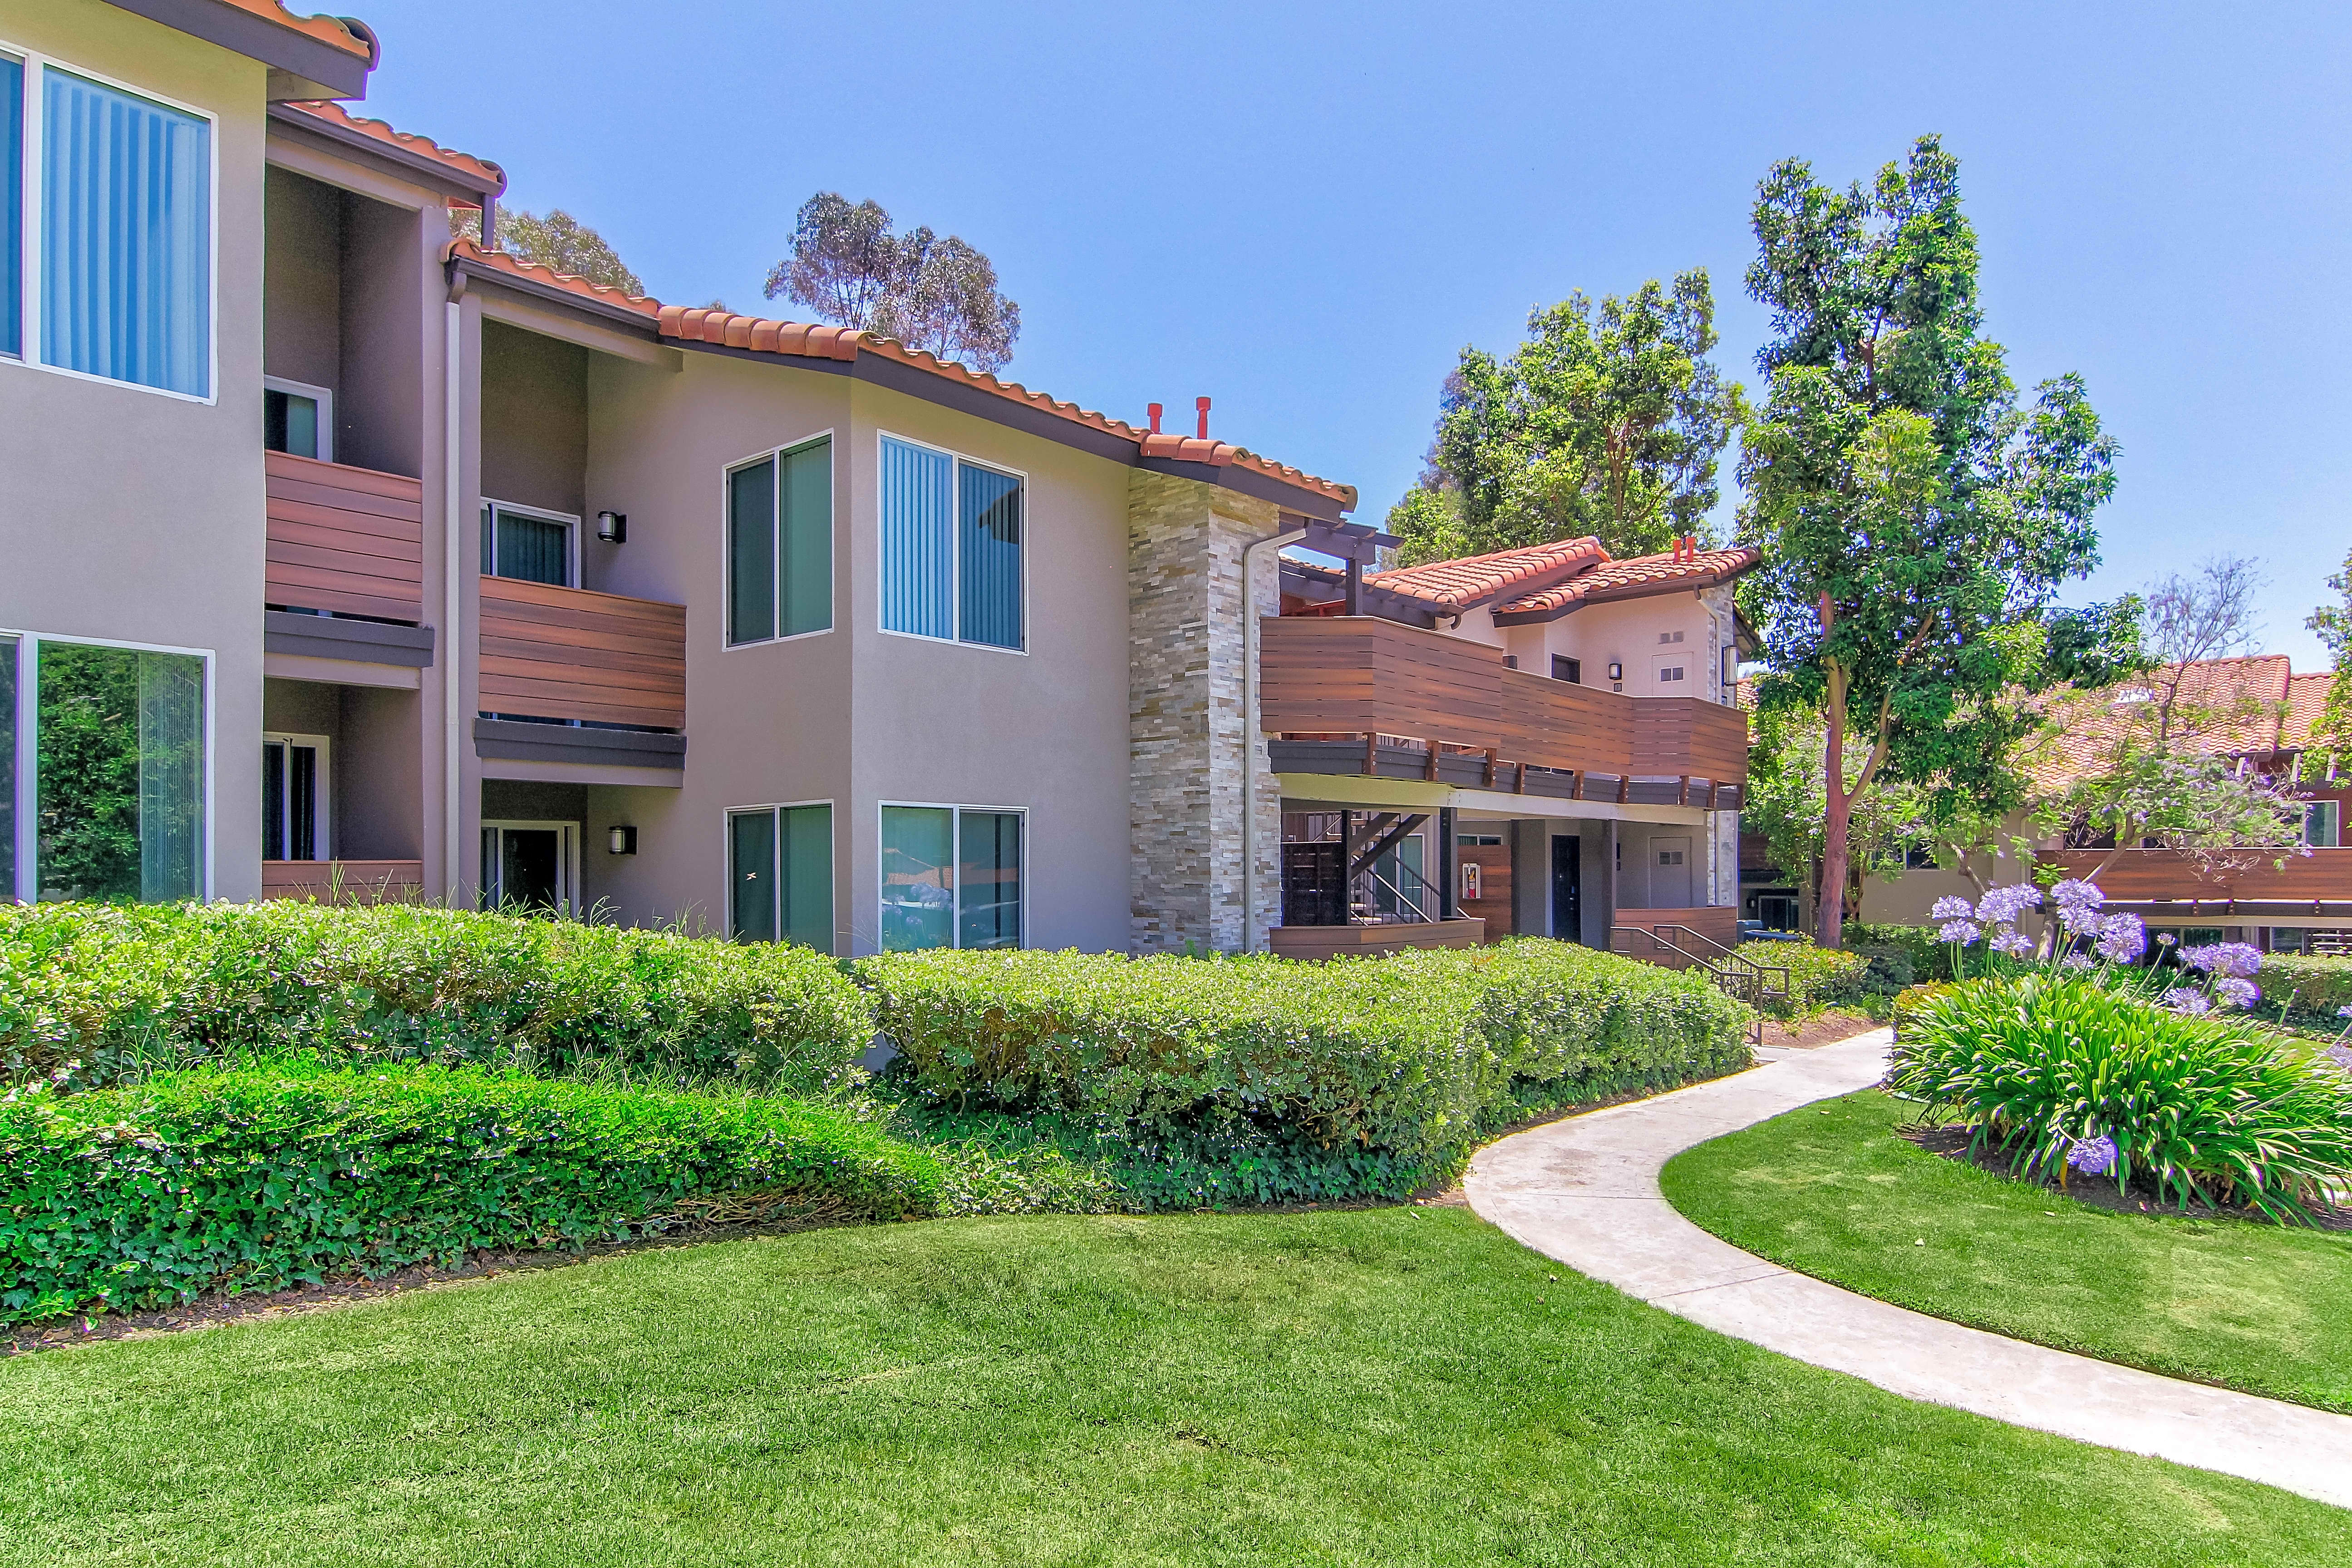 Apartments Near Saddleback Idyllwillow for Saddleback College Students in Mission Viejo, CA